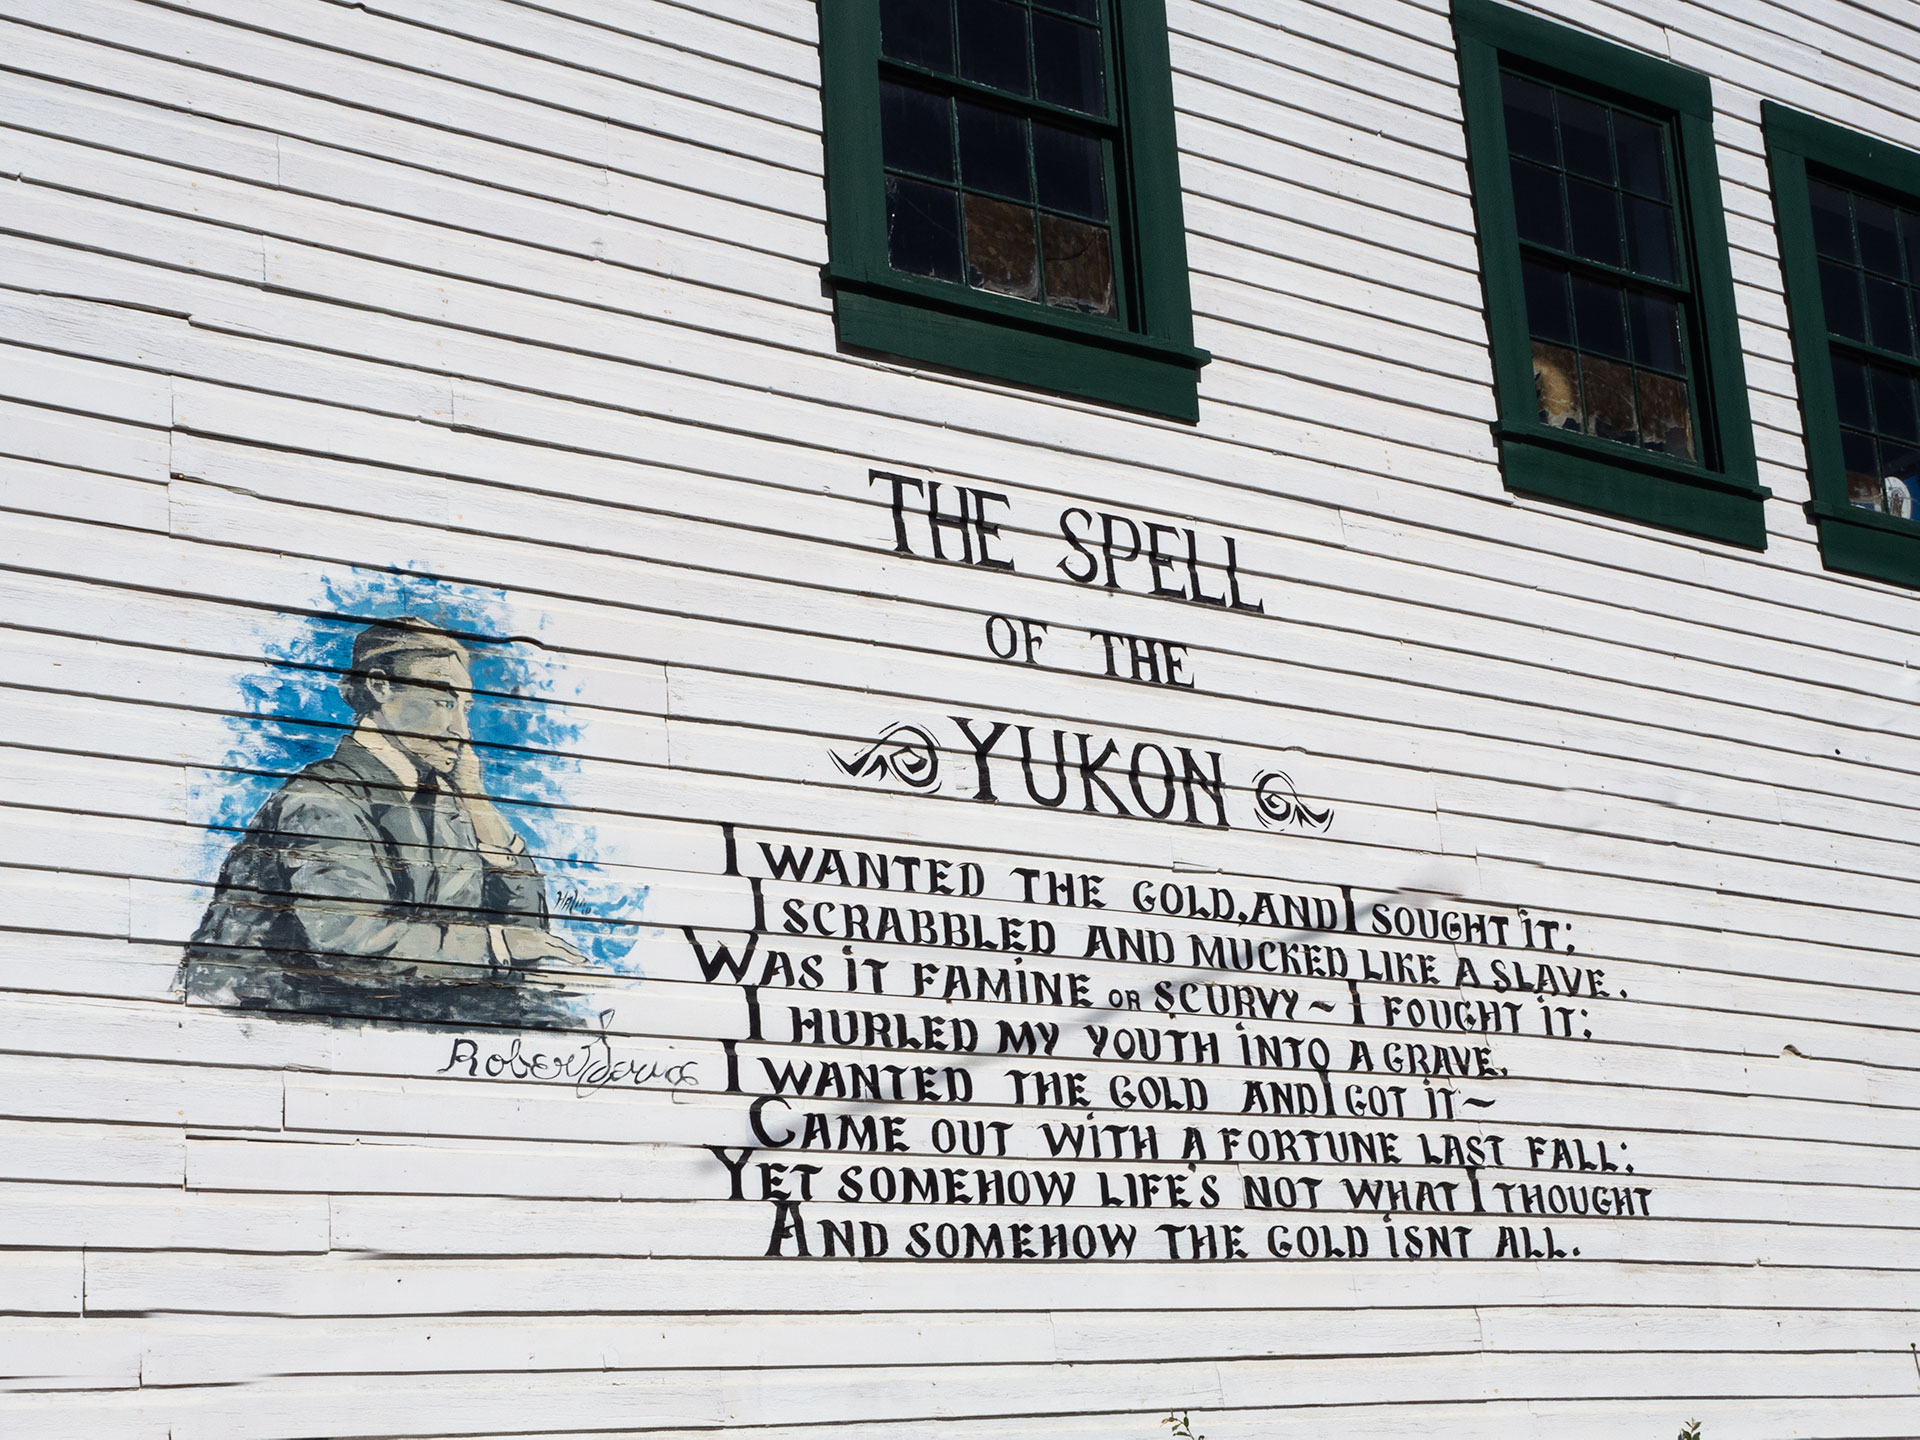 'The spell of the Yukon' poem on a building in Dawson City